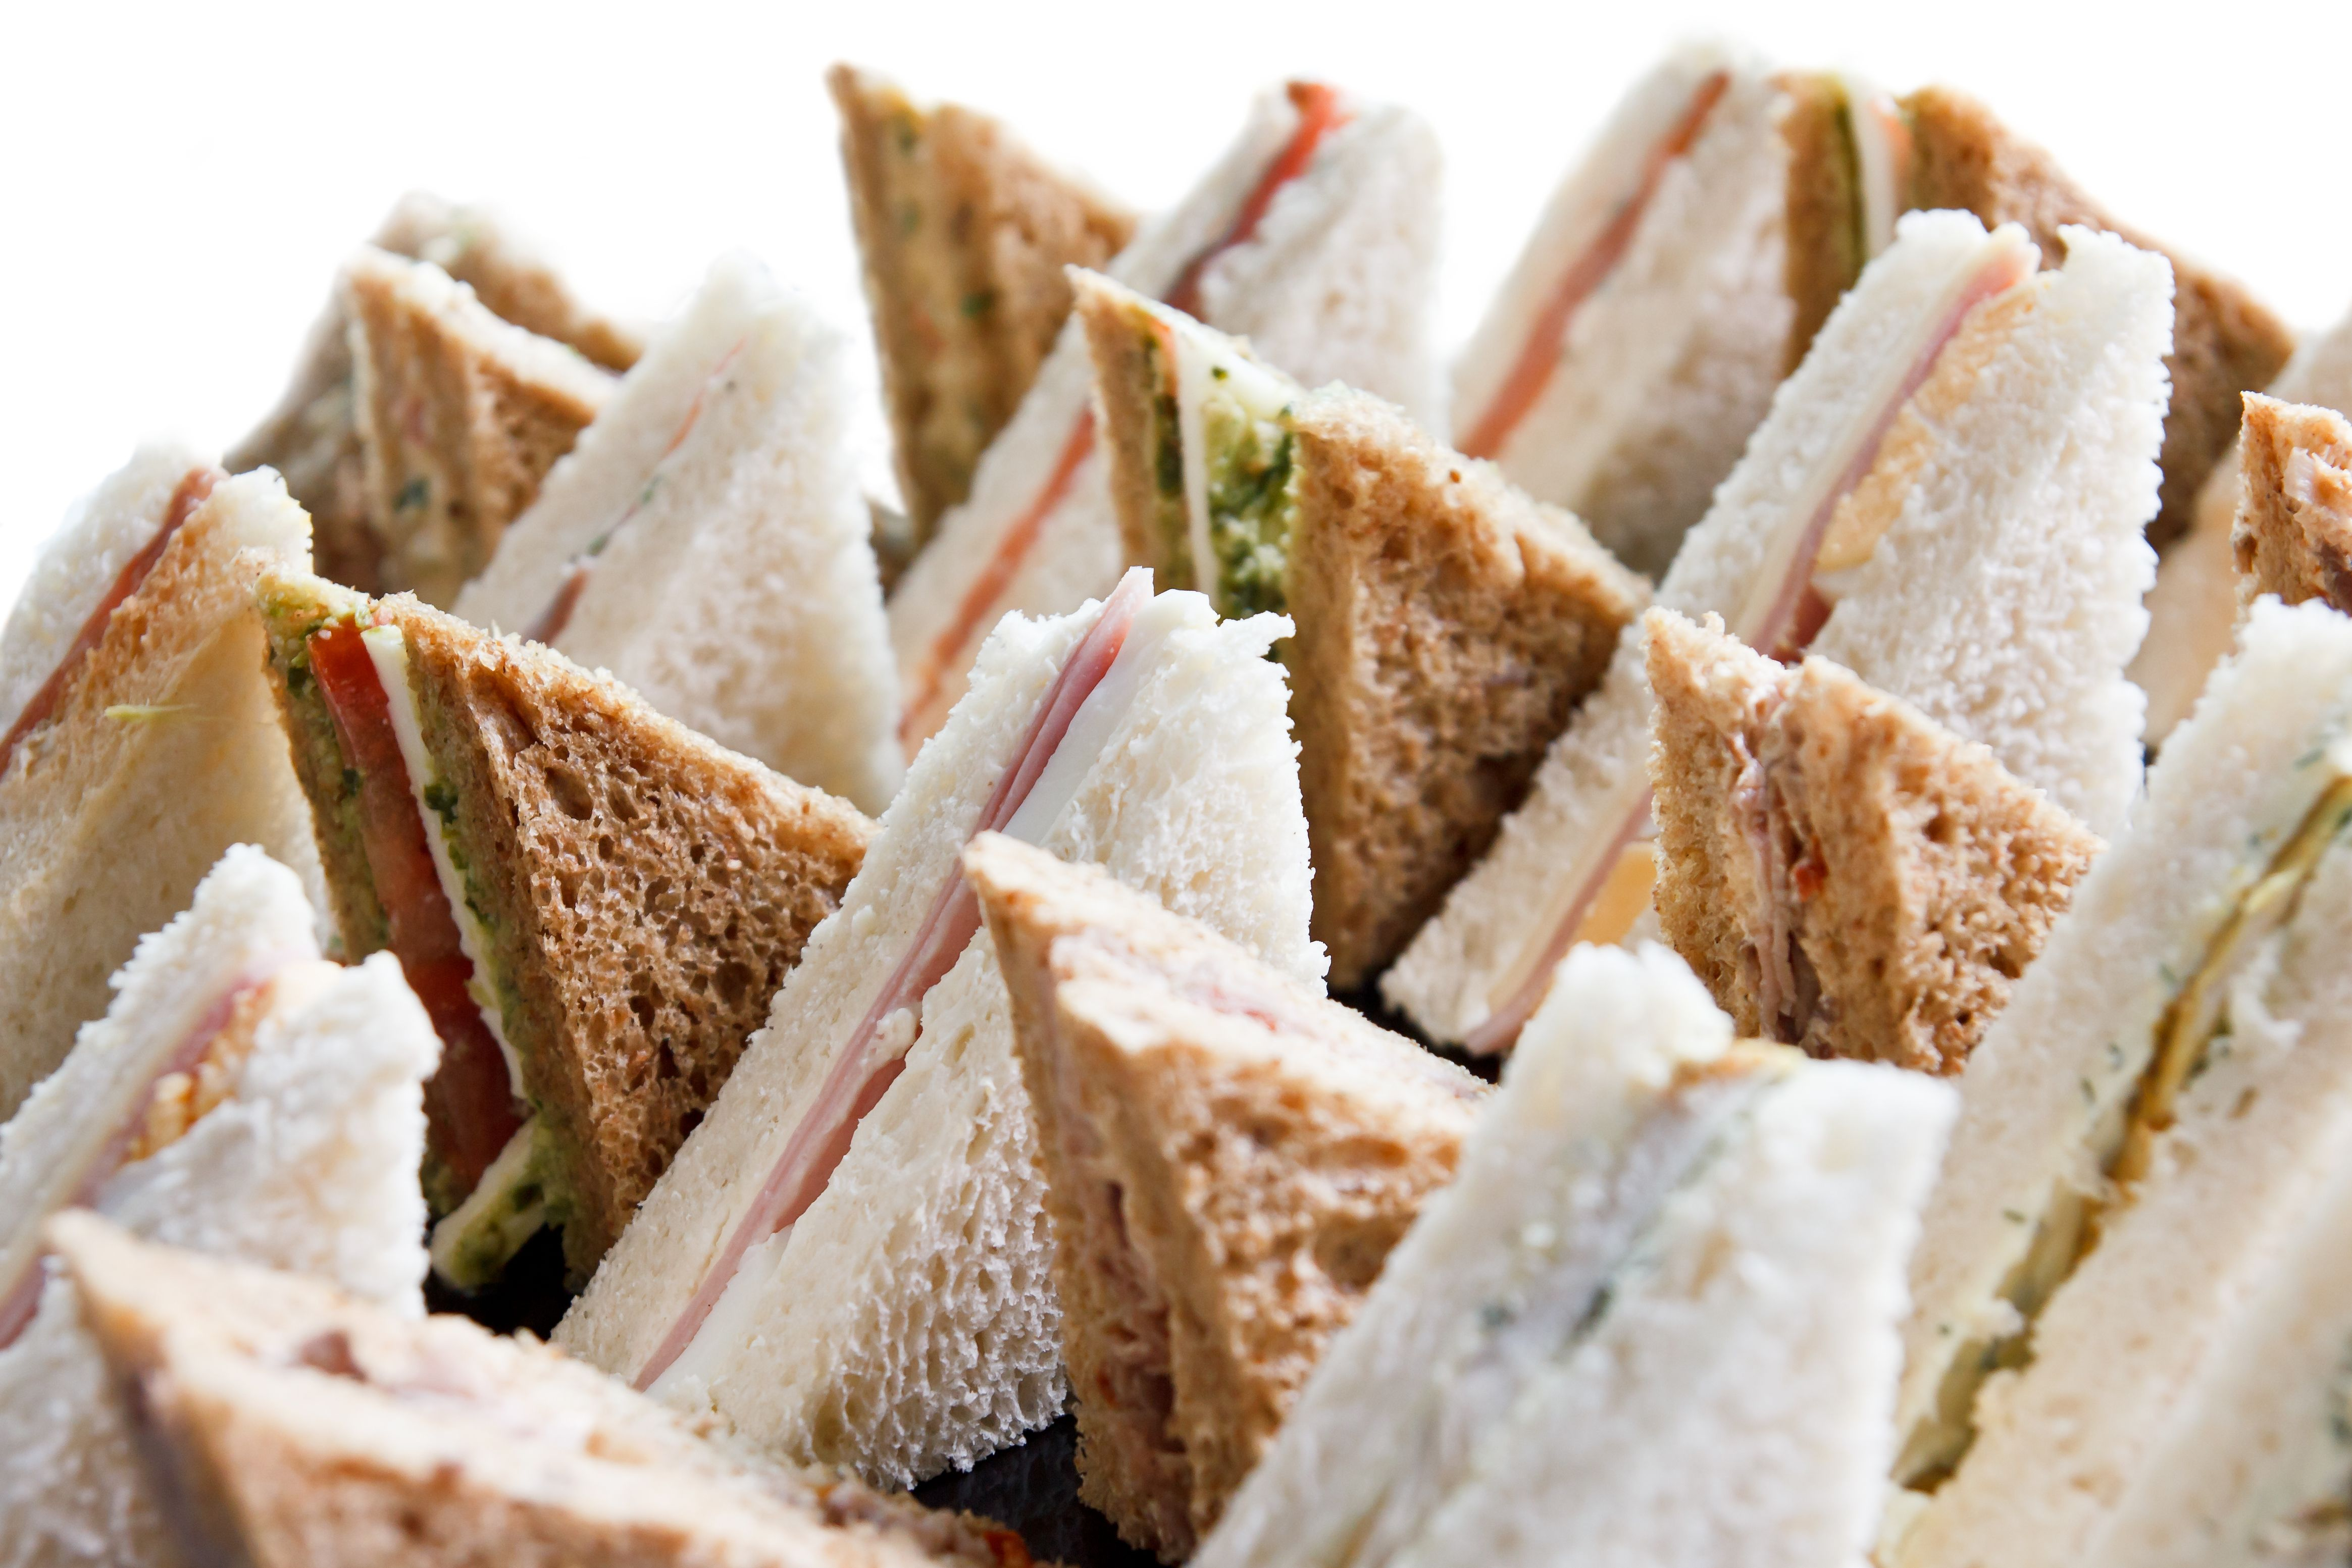 Triangles vs. Rectangles: What's the Better Way to Cut a Sandwich?